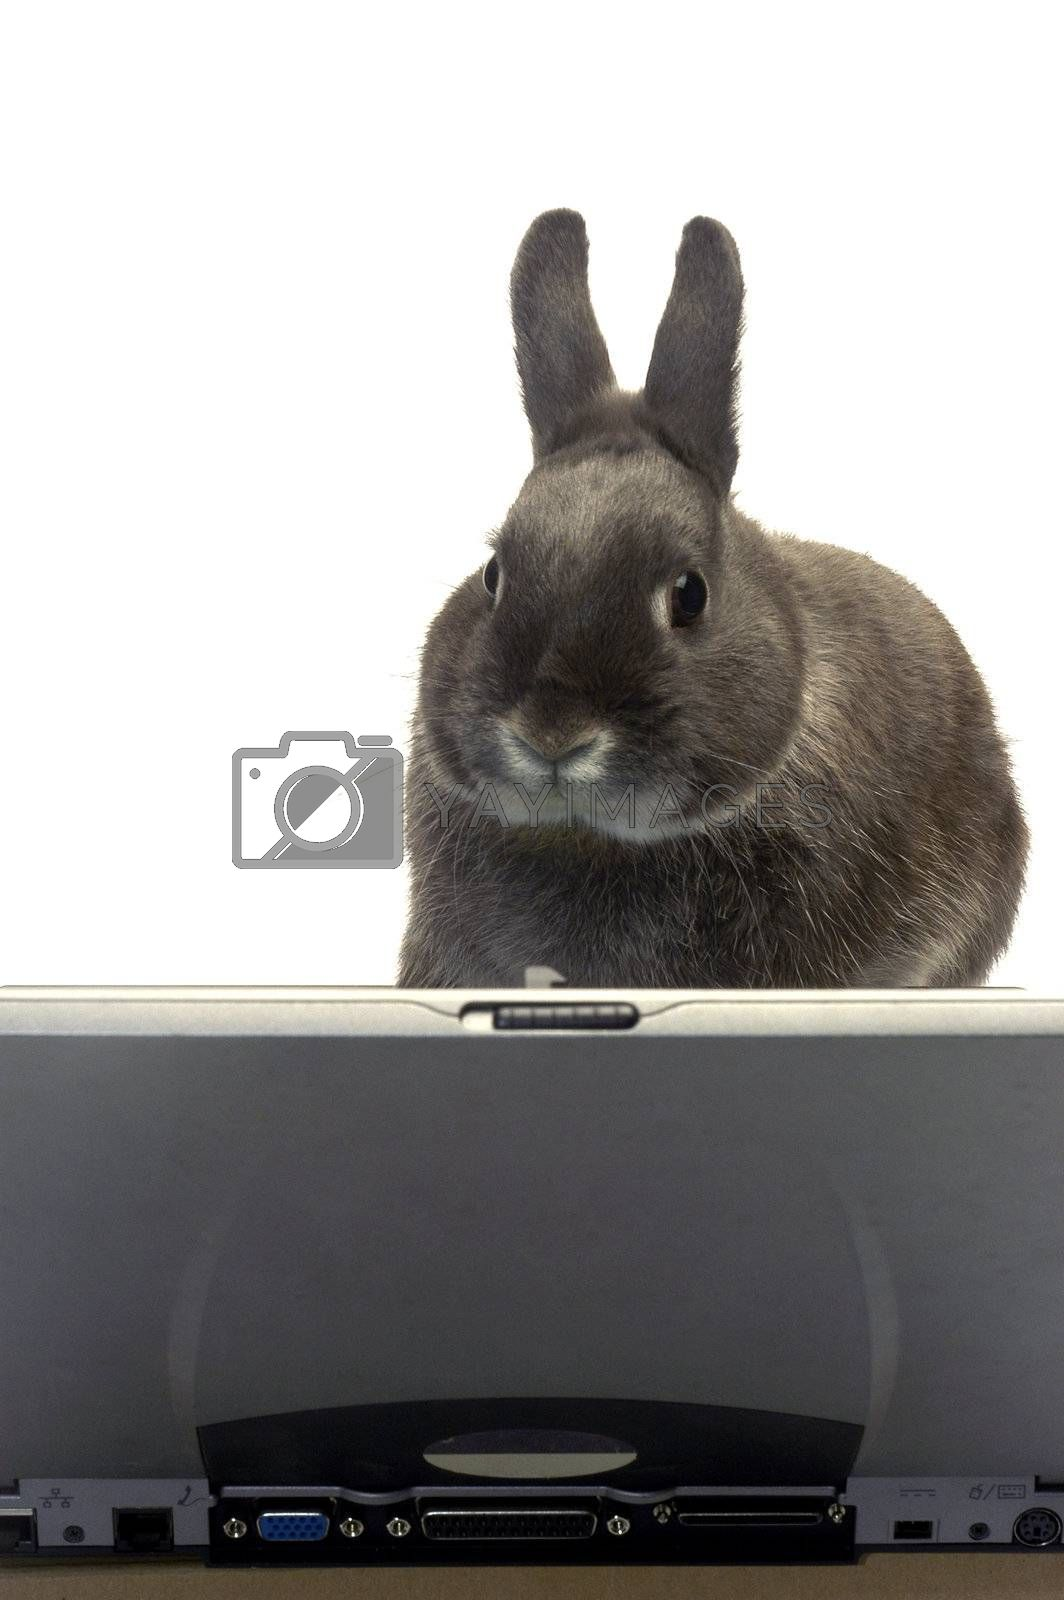 rabbit to illustrate the webmaster e-commerce